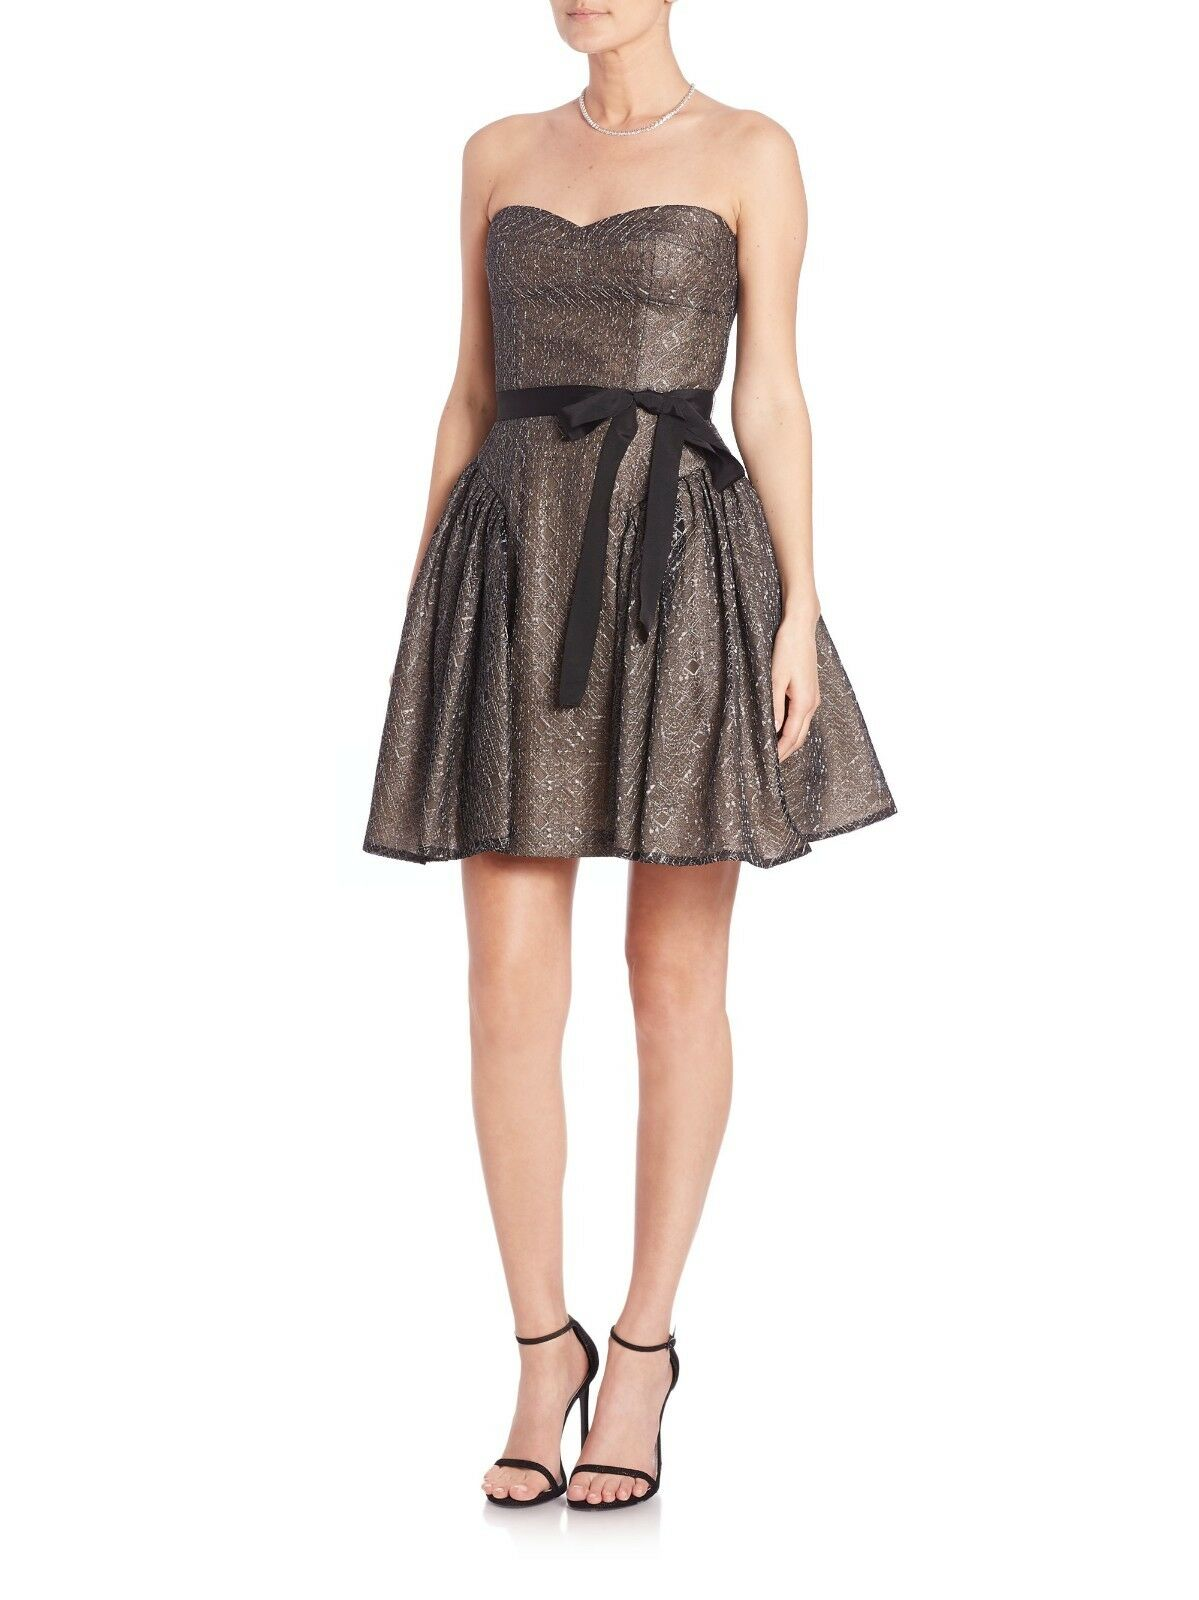 BCBGMAXAZRIA damen schwarz Kimmy Ruffled Metallic Lace Dress NWT Größe 6 MSRP  448